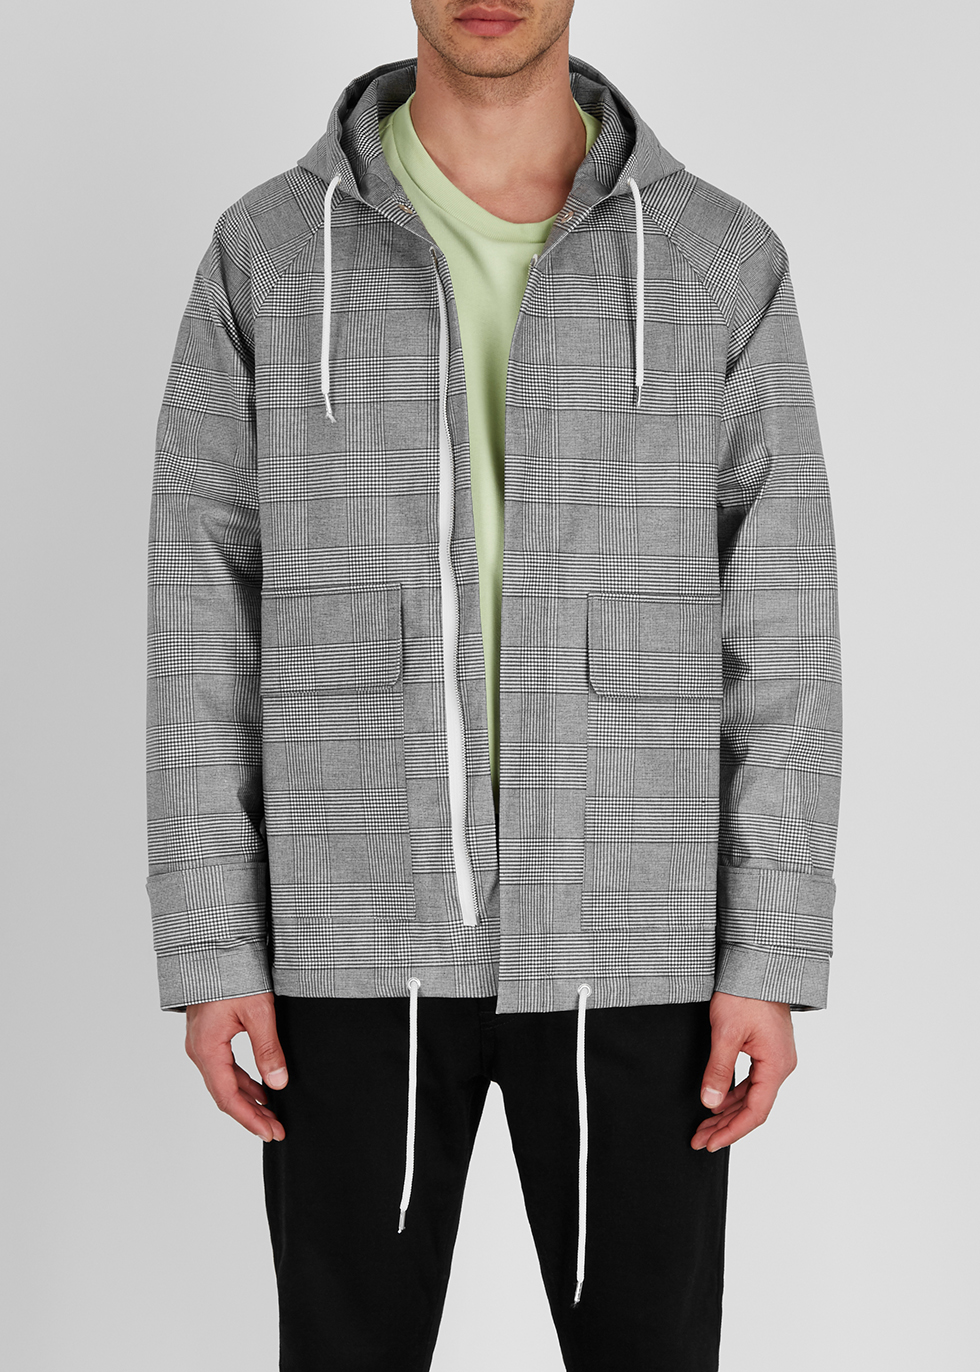 Grey cotton-blend raincoat - A Kind of Guise